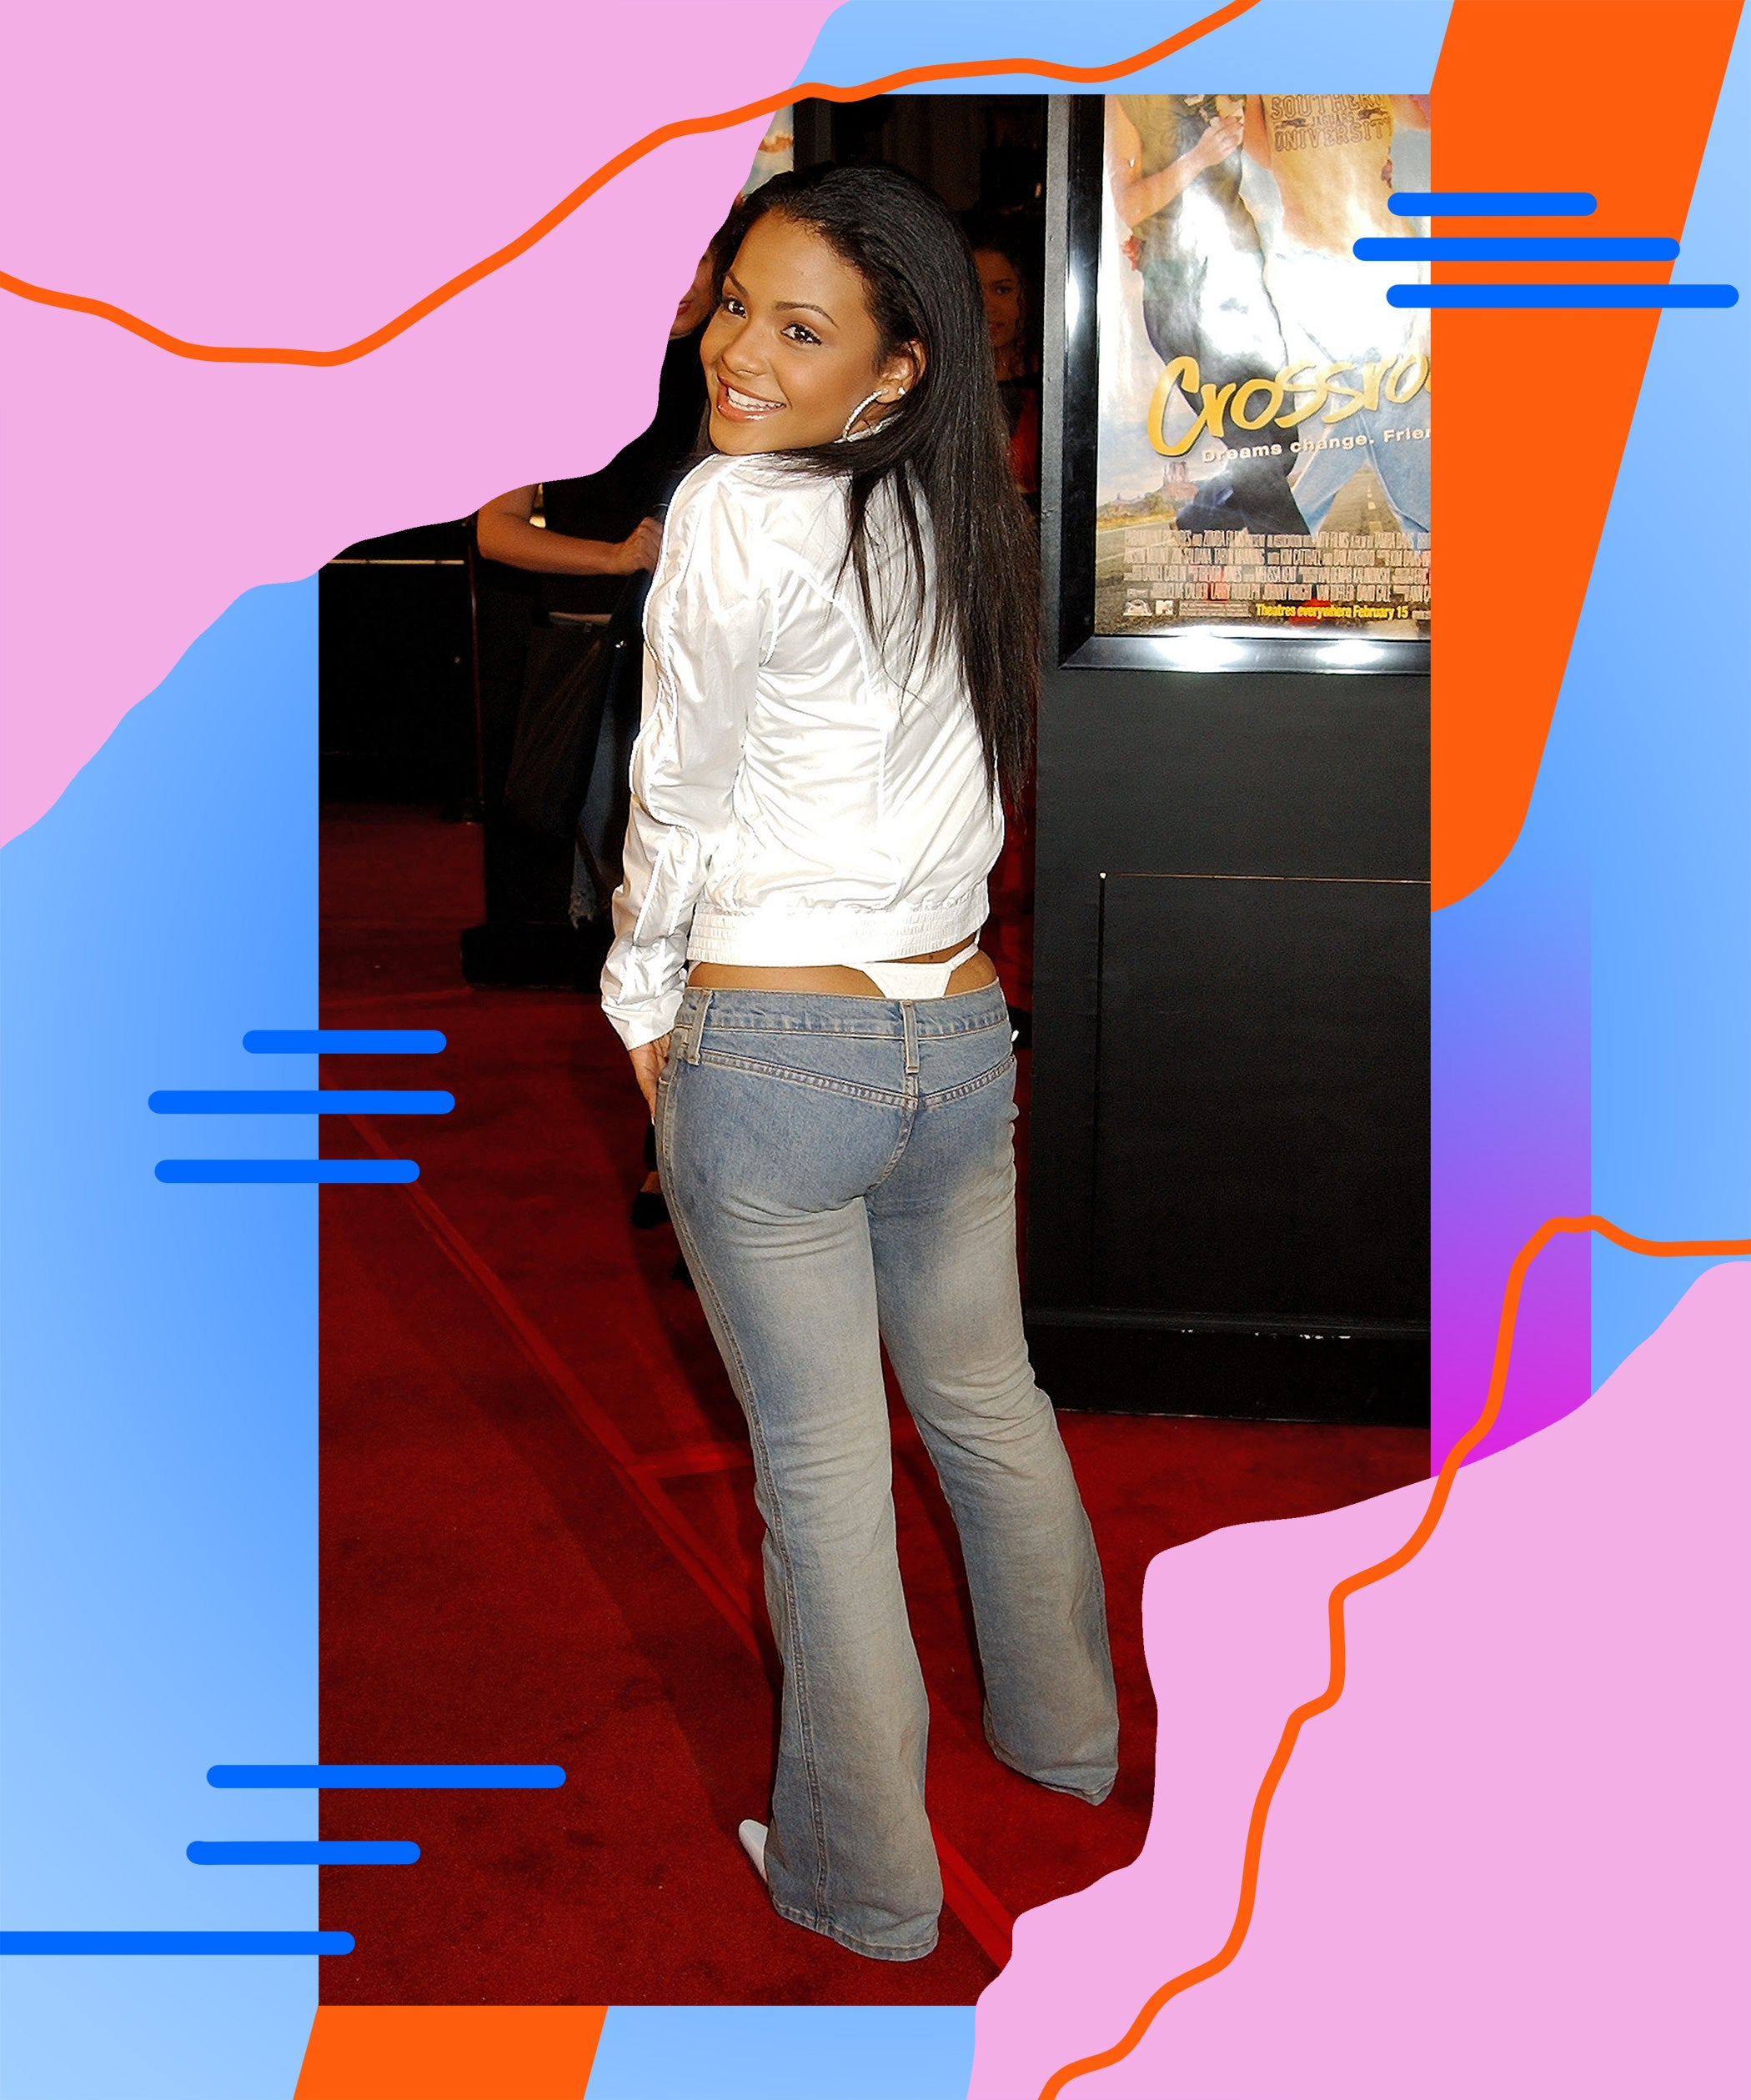 Low-Rise Jeans Are Officially Back. Who Will Be Wearing Them?